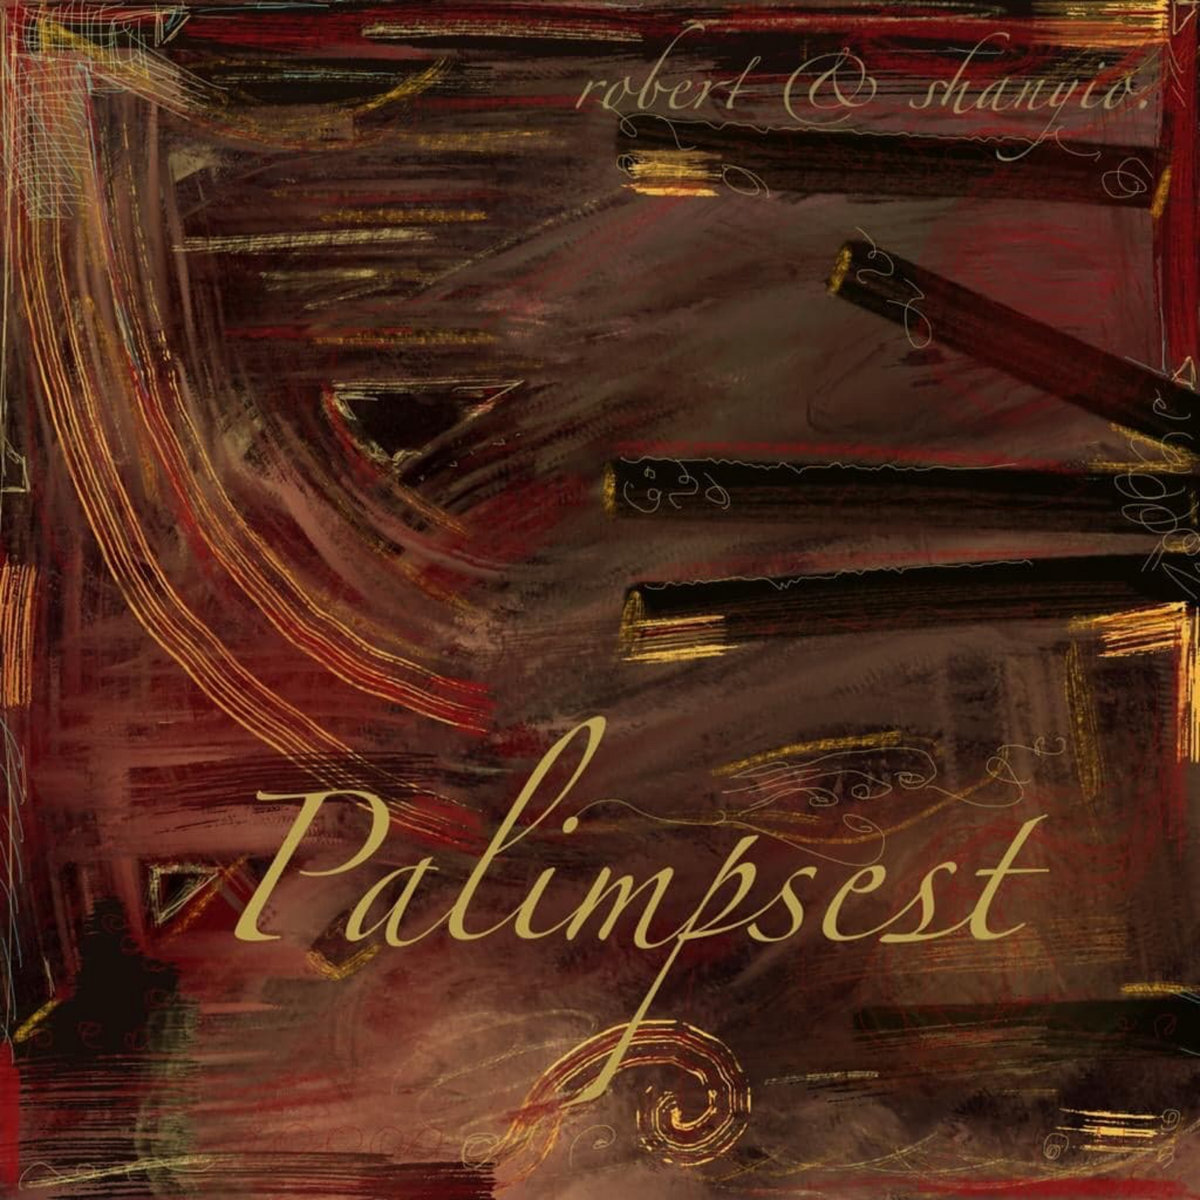 Robert & Shanyio - Palimpest CD